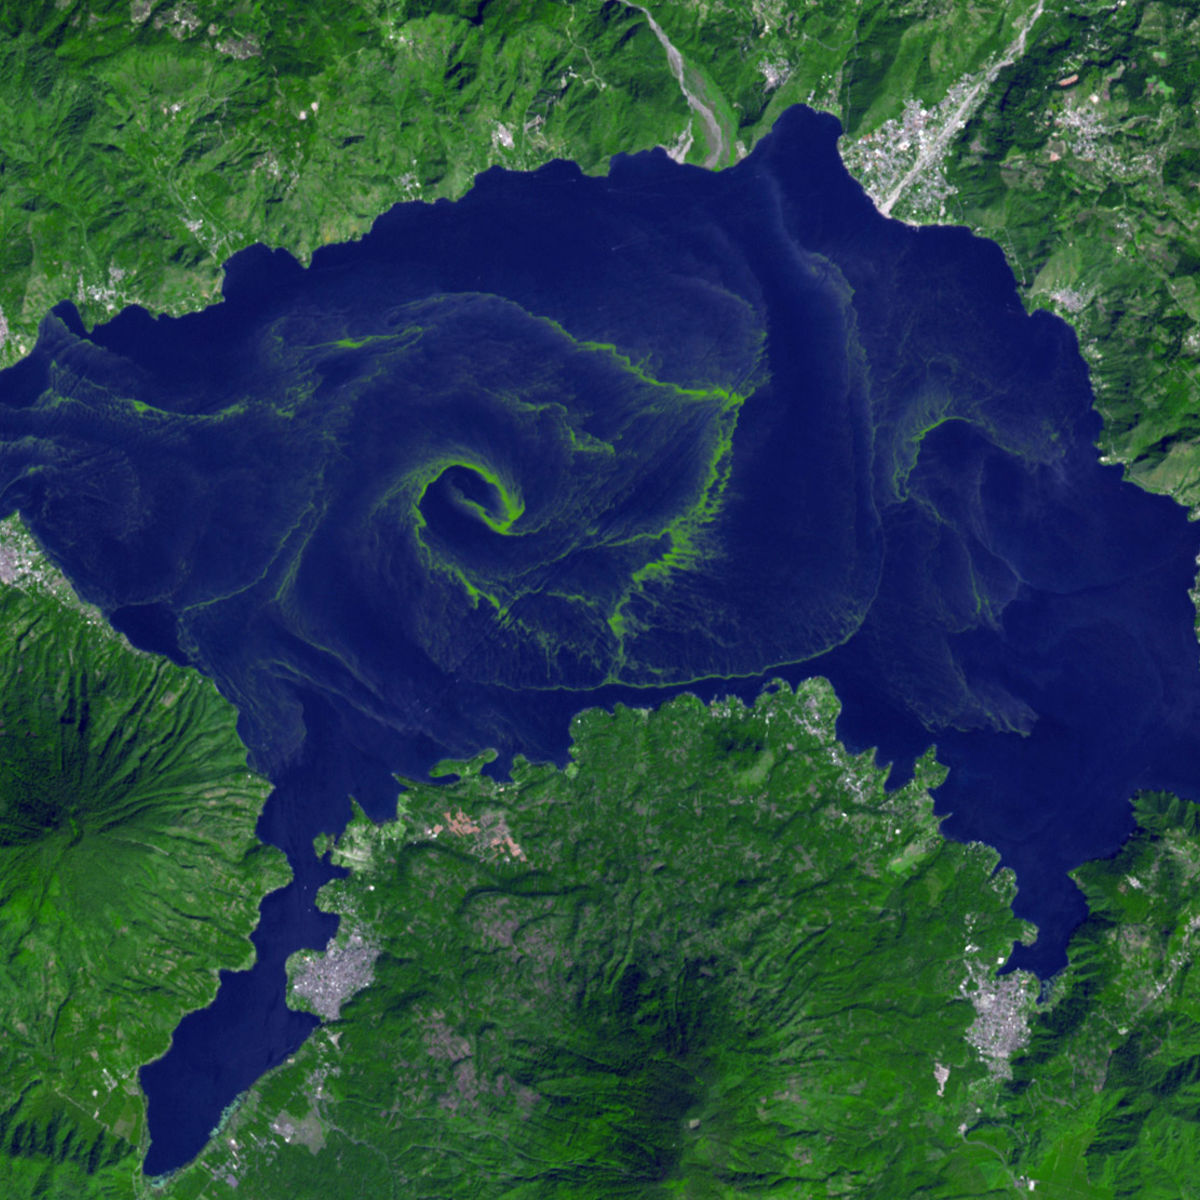 A cyanobacteria bloom in Guatemala's Lake Atitlán created a vast dead zone in the otherwise fecund lake, showing that billions of years later these bacteria can still cause grief.